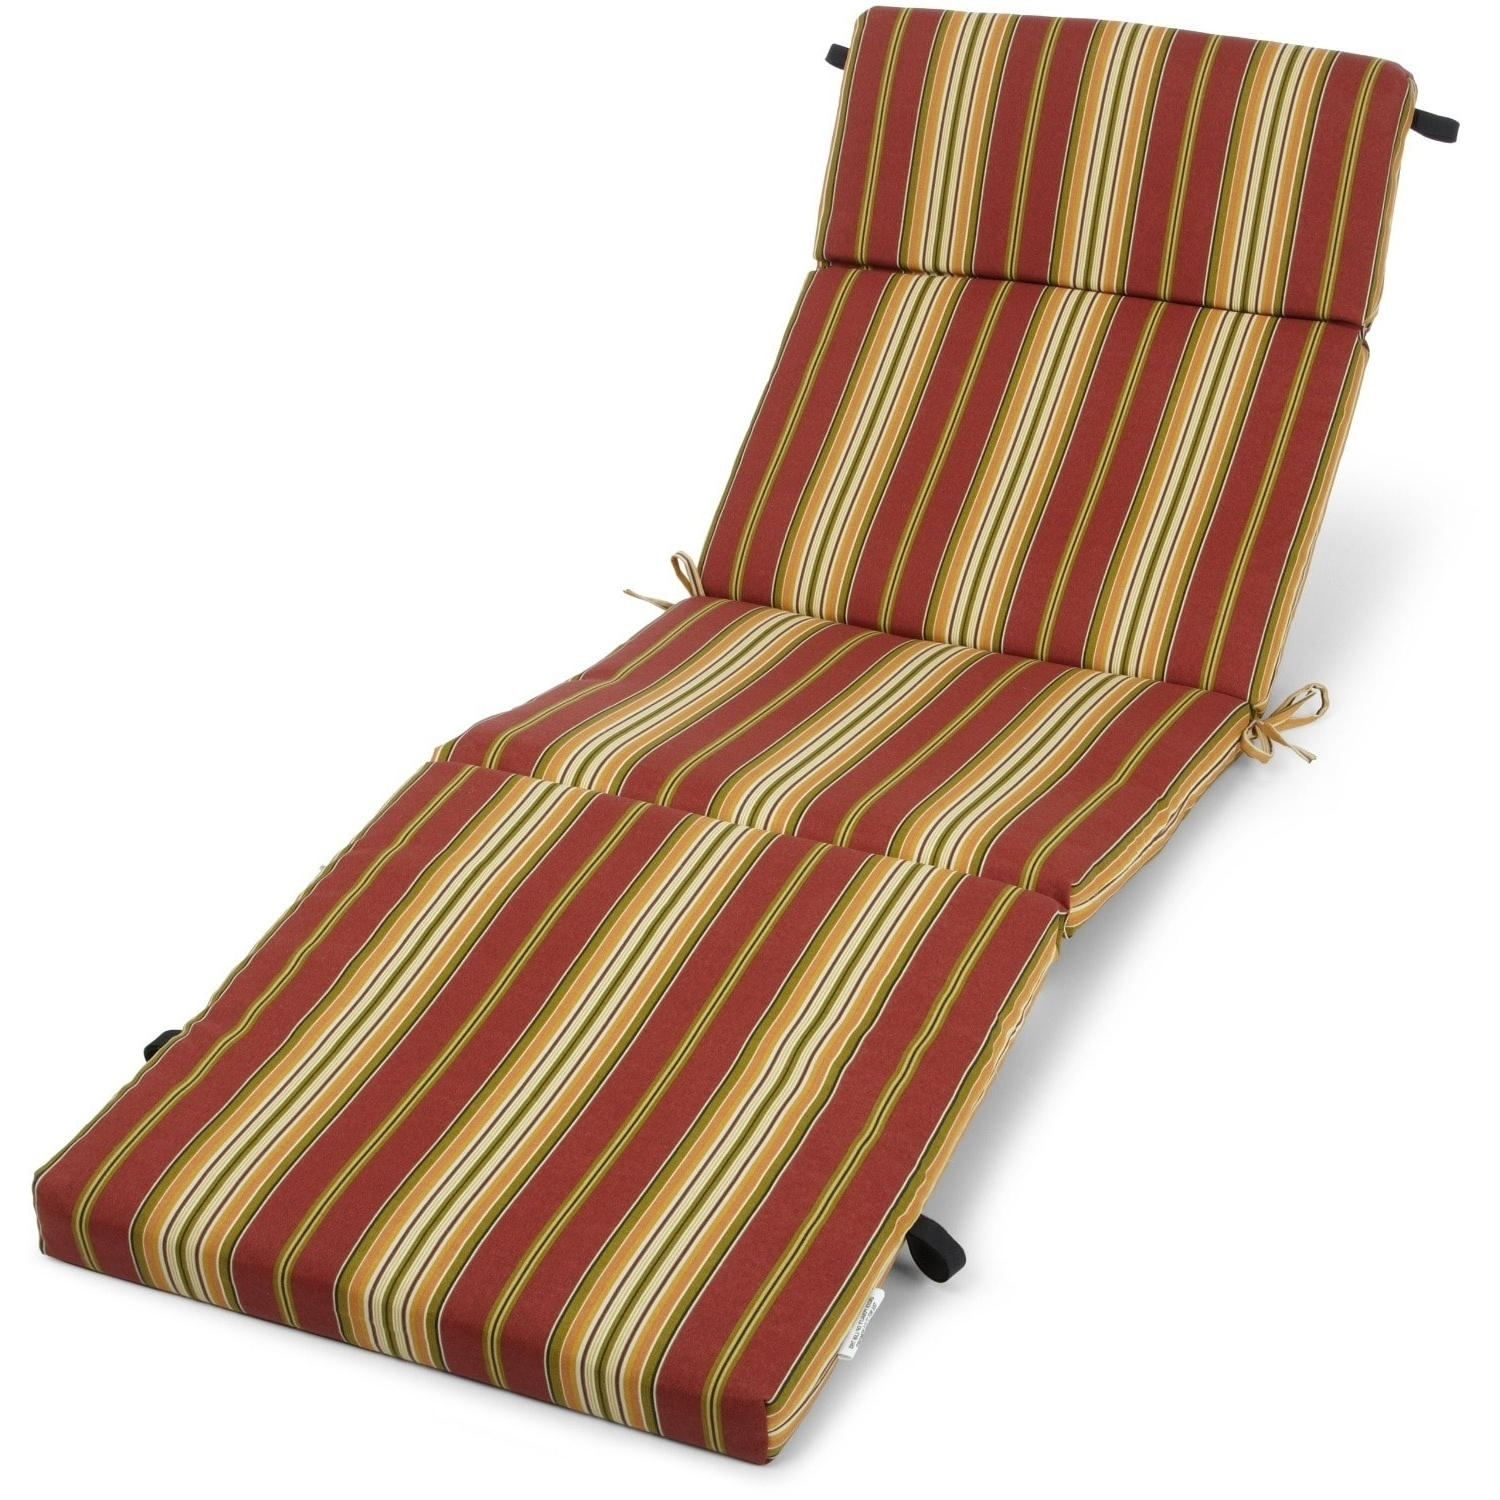 Well Liked Outdoor Chaise Lounge Cushion – Free Shipping Today – Overstock Regarding Outdoor Chaise Lounge Cushions (View 15 of 15)